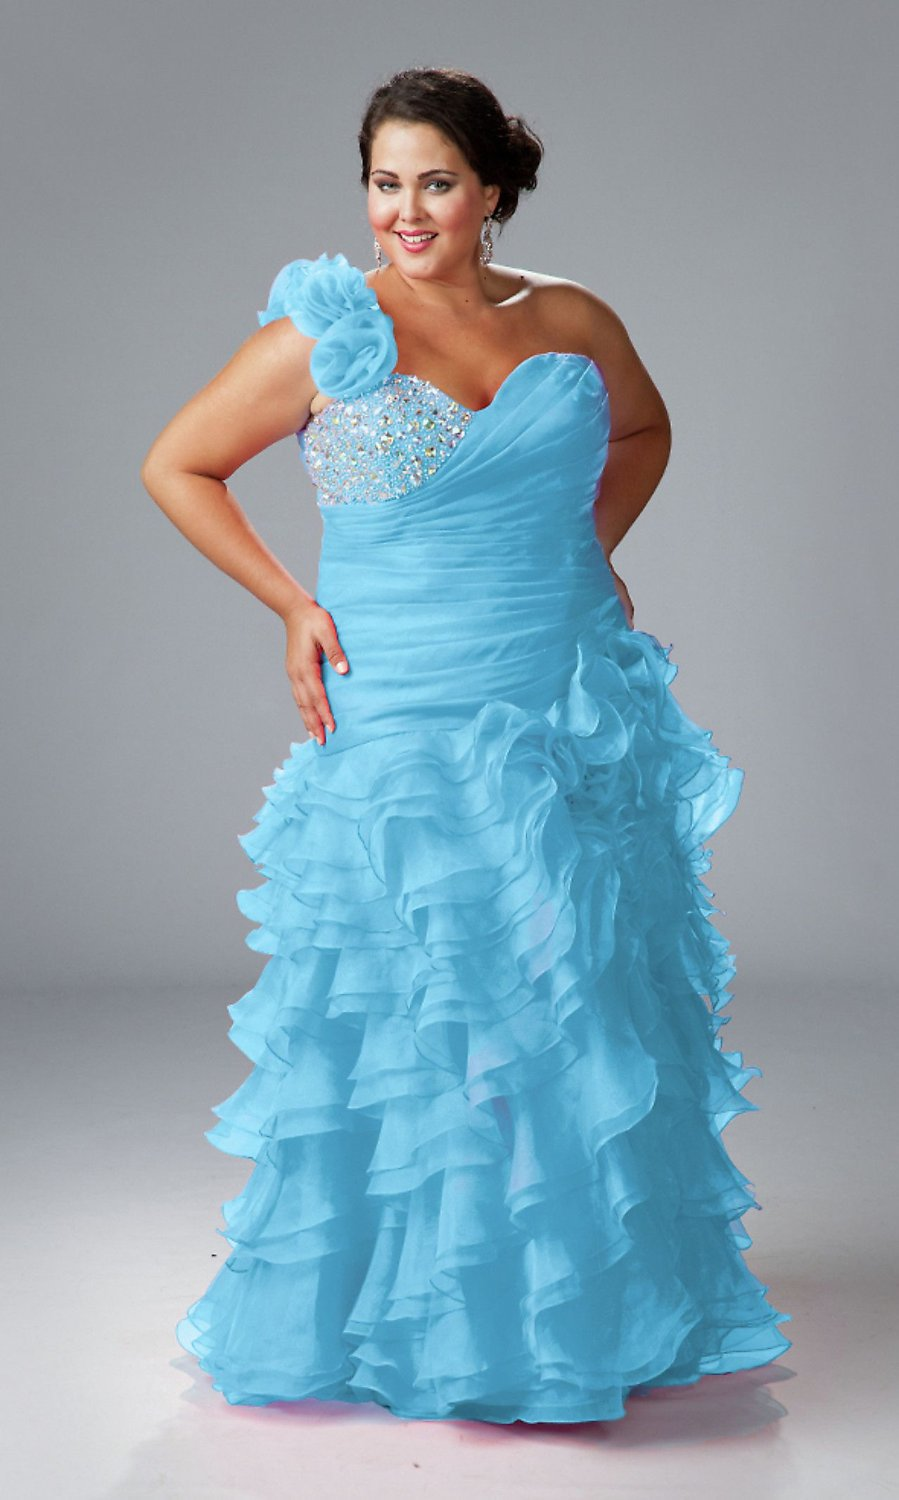 A-83 Plus Size Sexy One Shoulder Multi-layered Blue Prom Dress